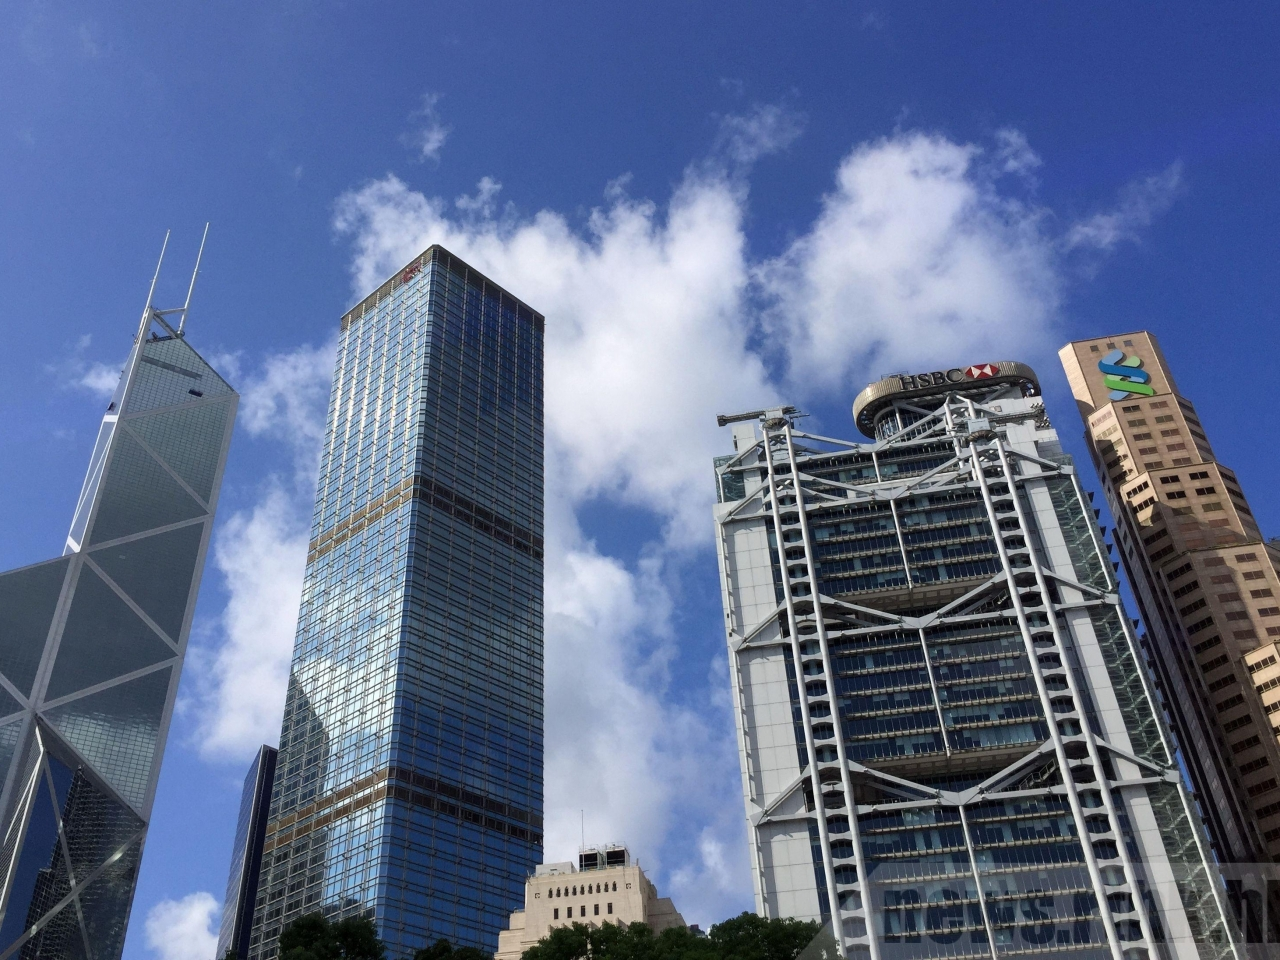 Hong Kong's financial system remains resilient: IMF